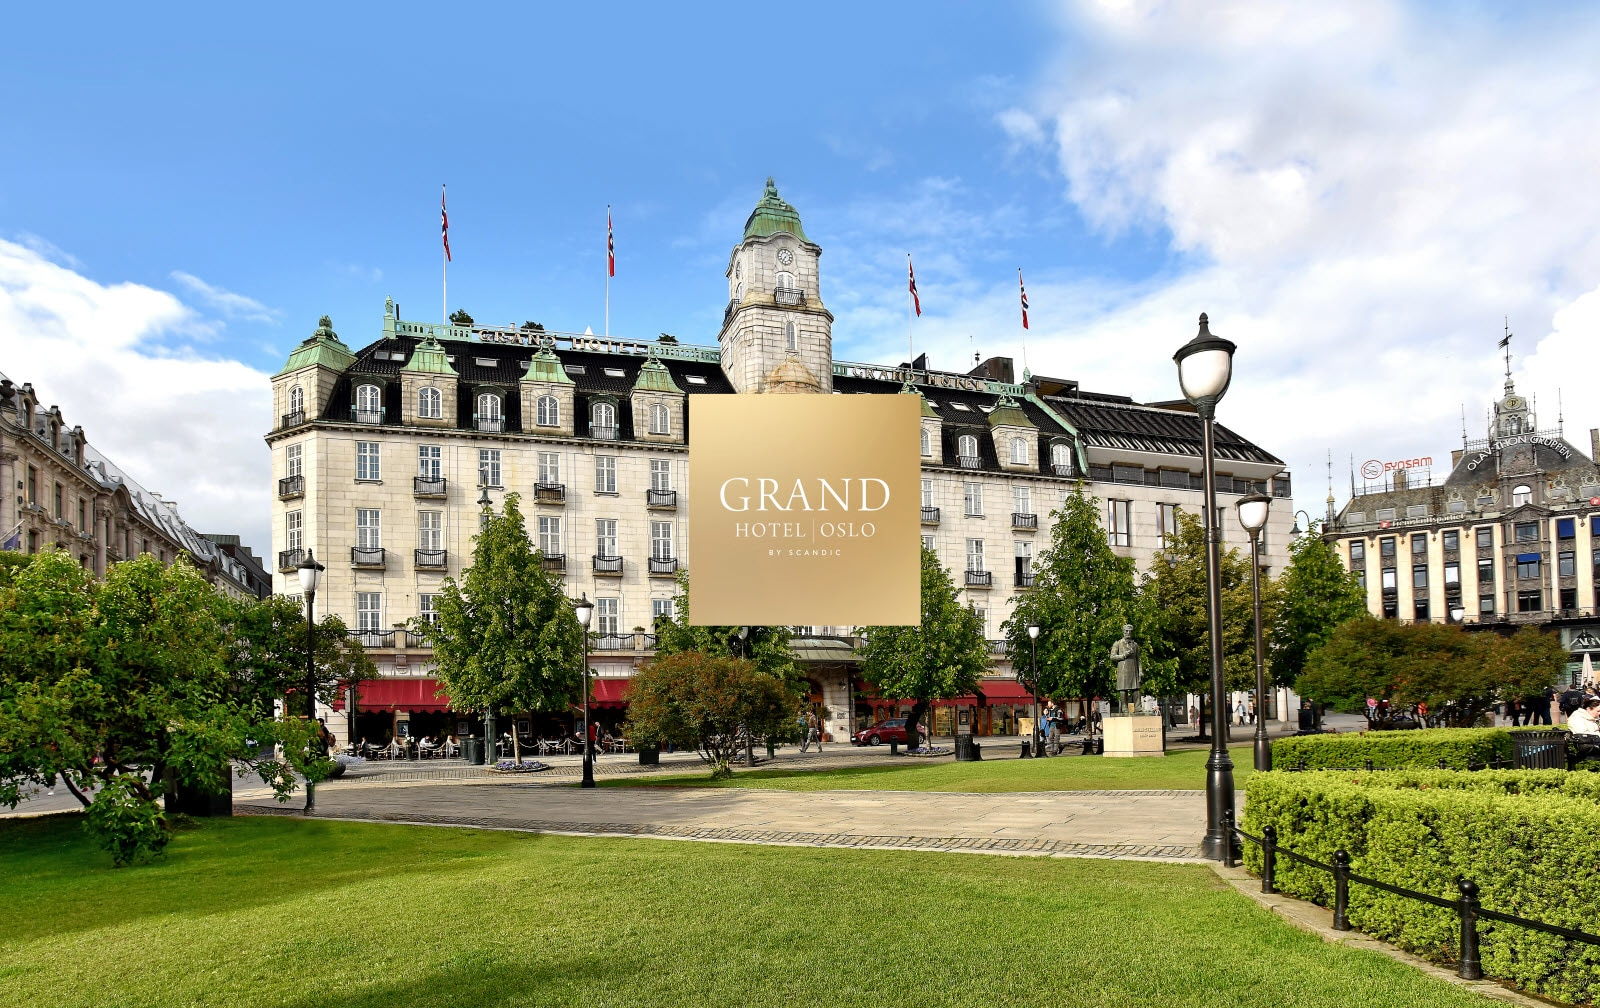 Grand hotel oslo by scandic hotell oslo for Grand hotel